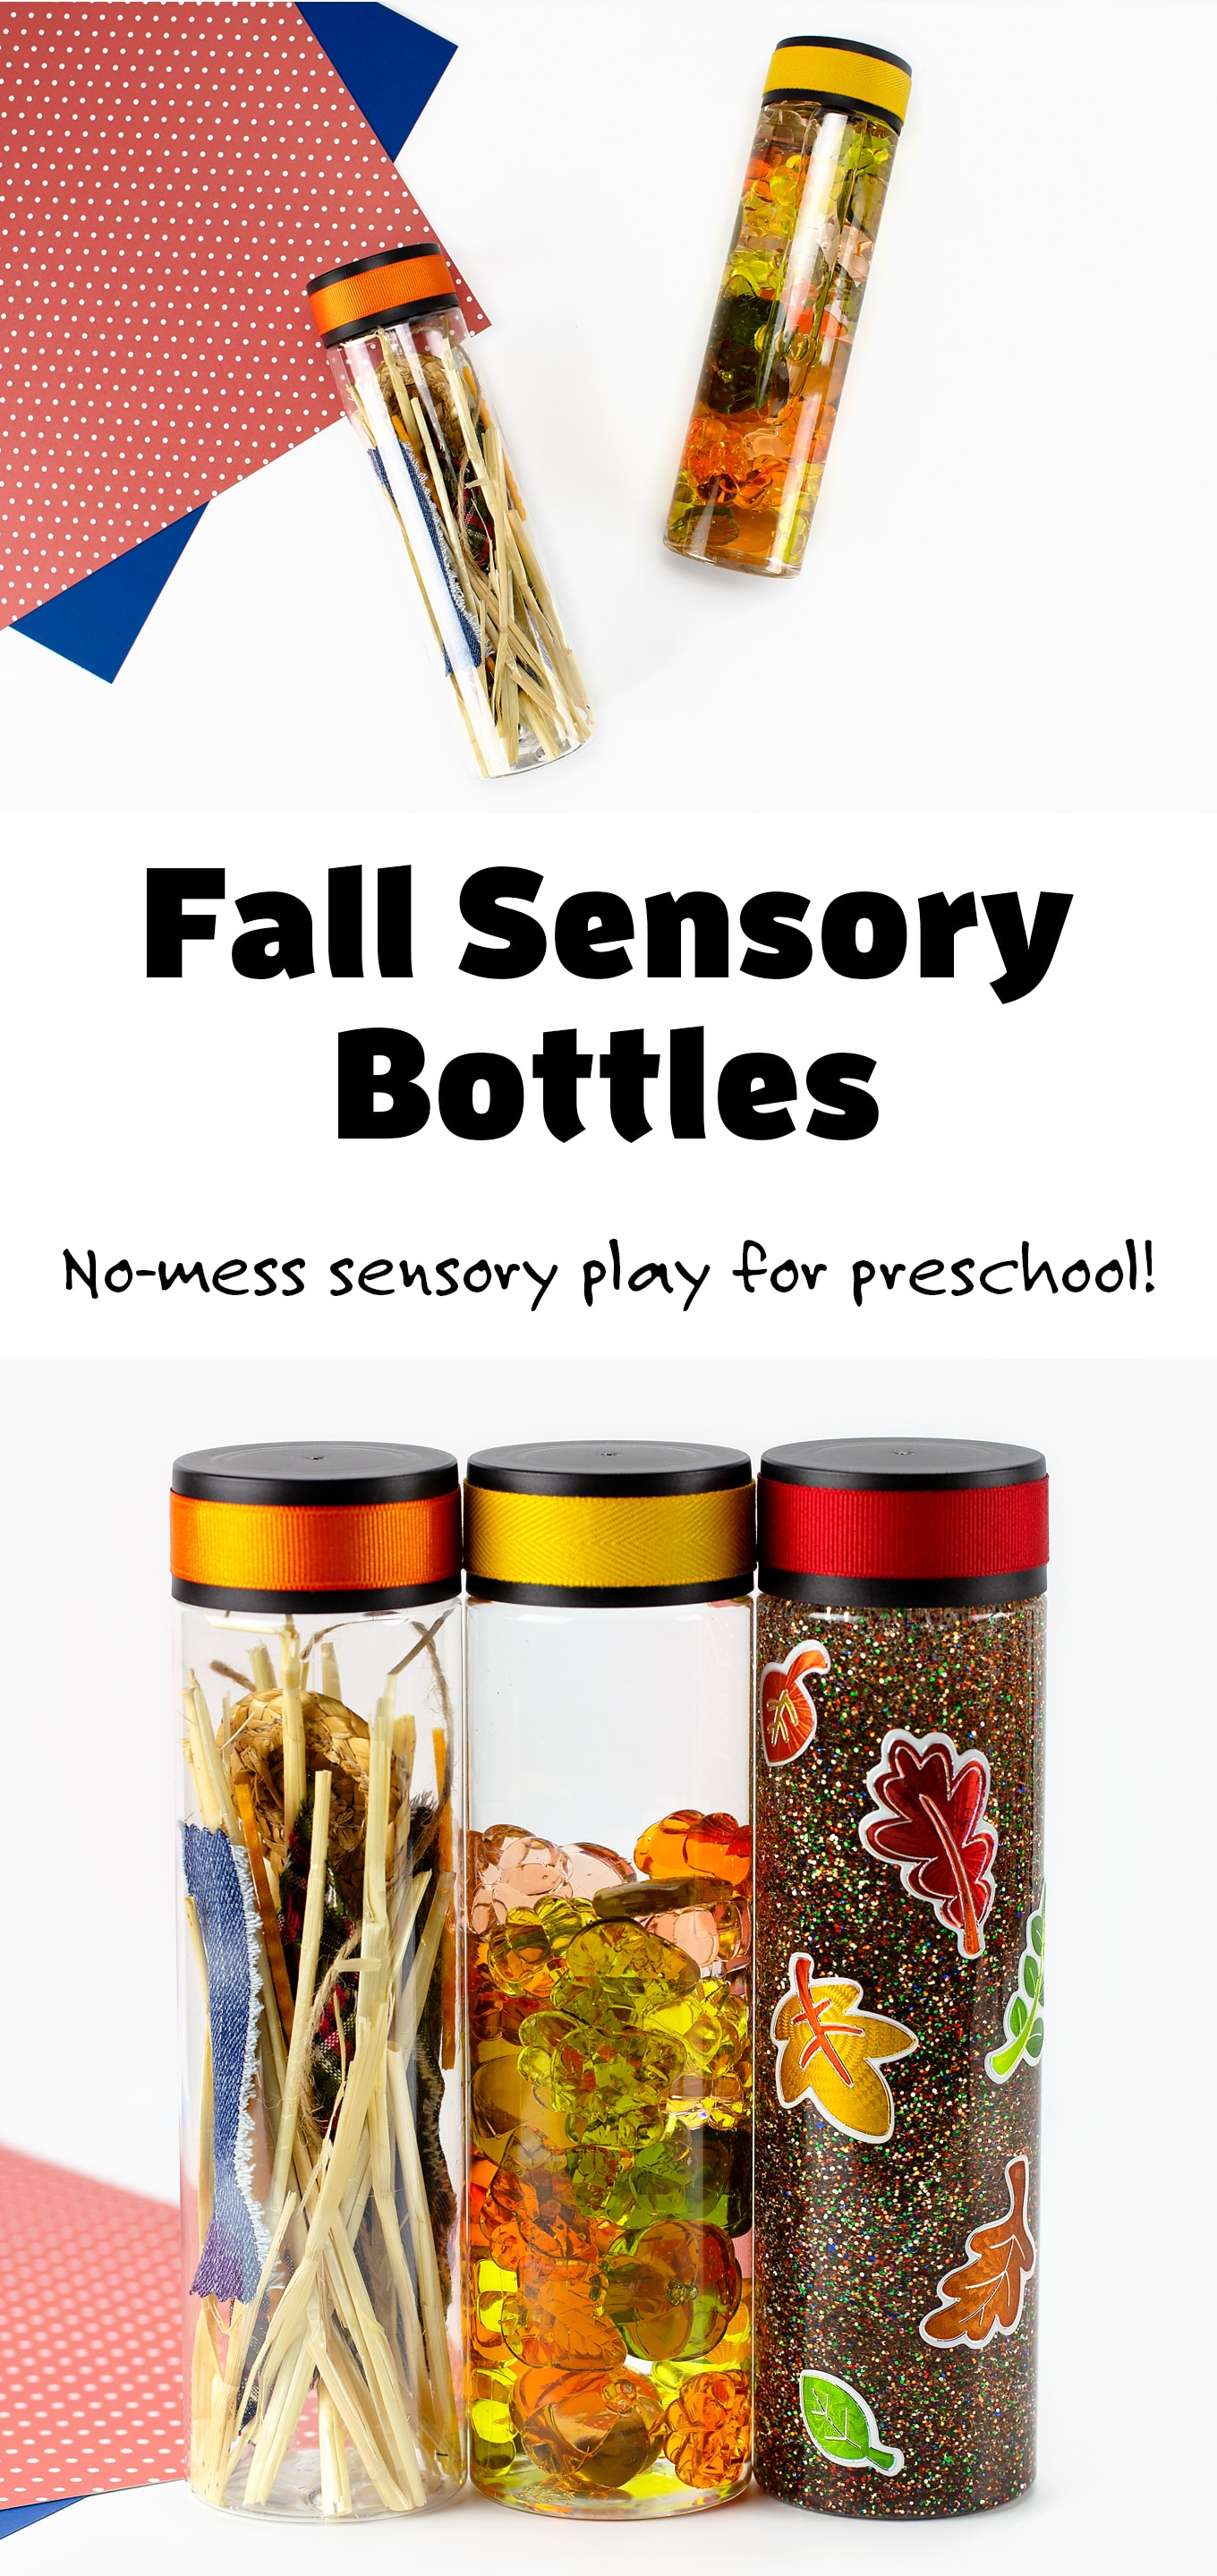 Learn how to make three mesmerizingfall sensory bottles (pumpkin, leaf, and scarecrow) that are perfect for safe, no-mess sensory play at home or at school.DIY sensory play ideas for preschool, toddlers, and older kids! #fallsensorybottles #preschool #sensoryplayideas #kids via @firefliesandmudpies